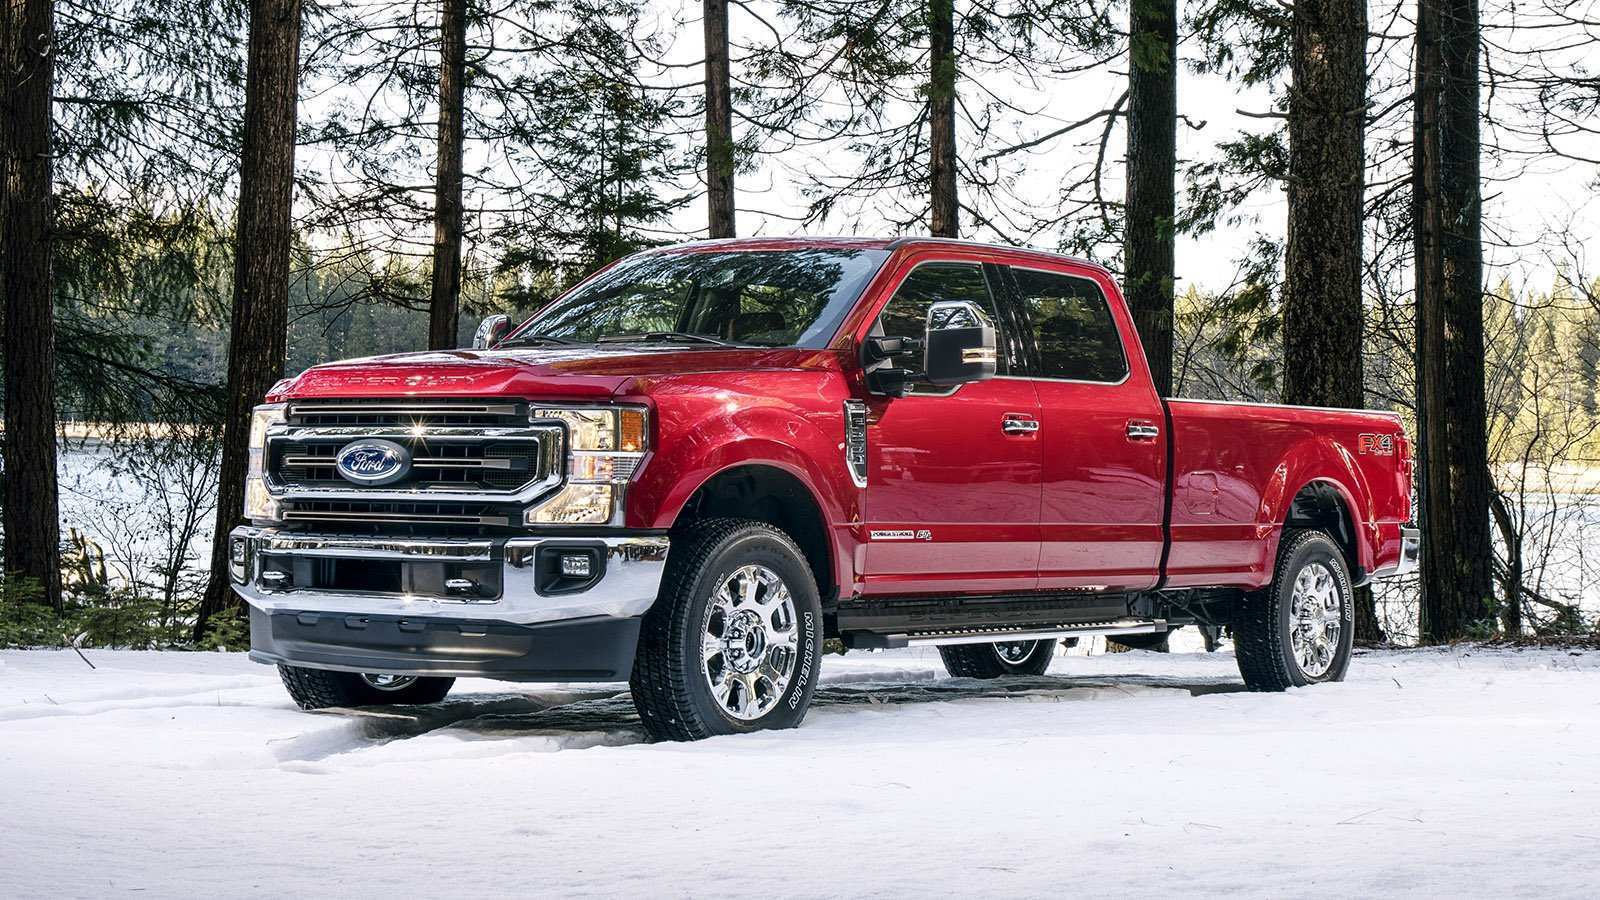 74 Best 2020 Ford F450 Super Duty Concept